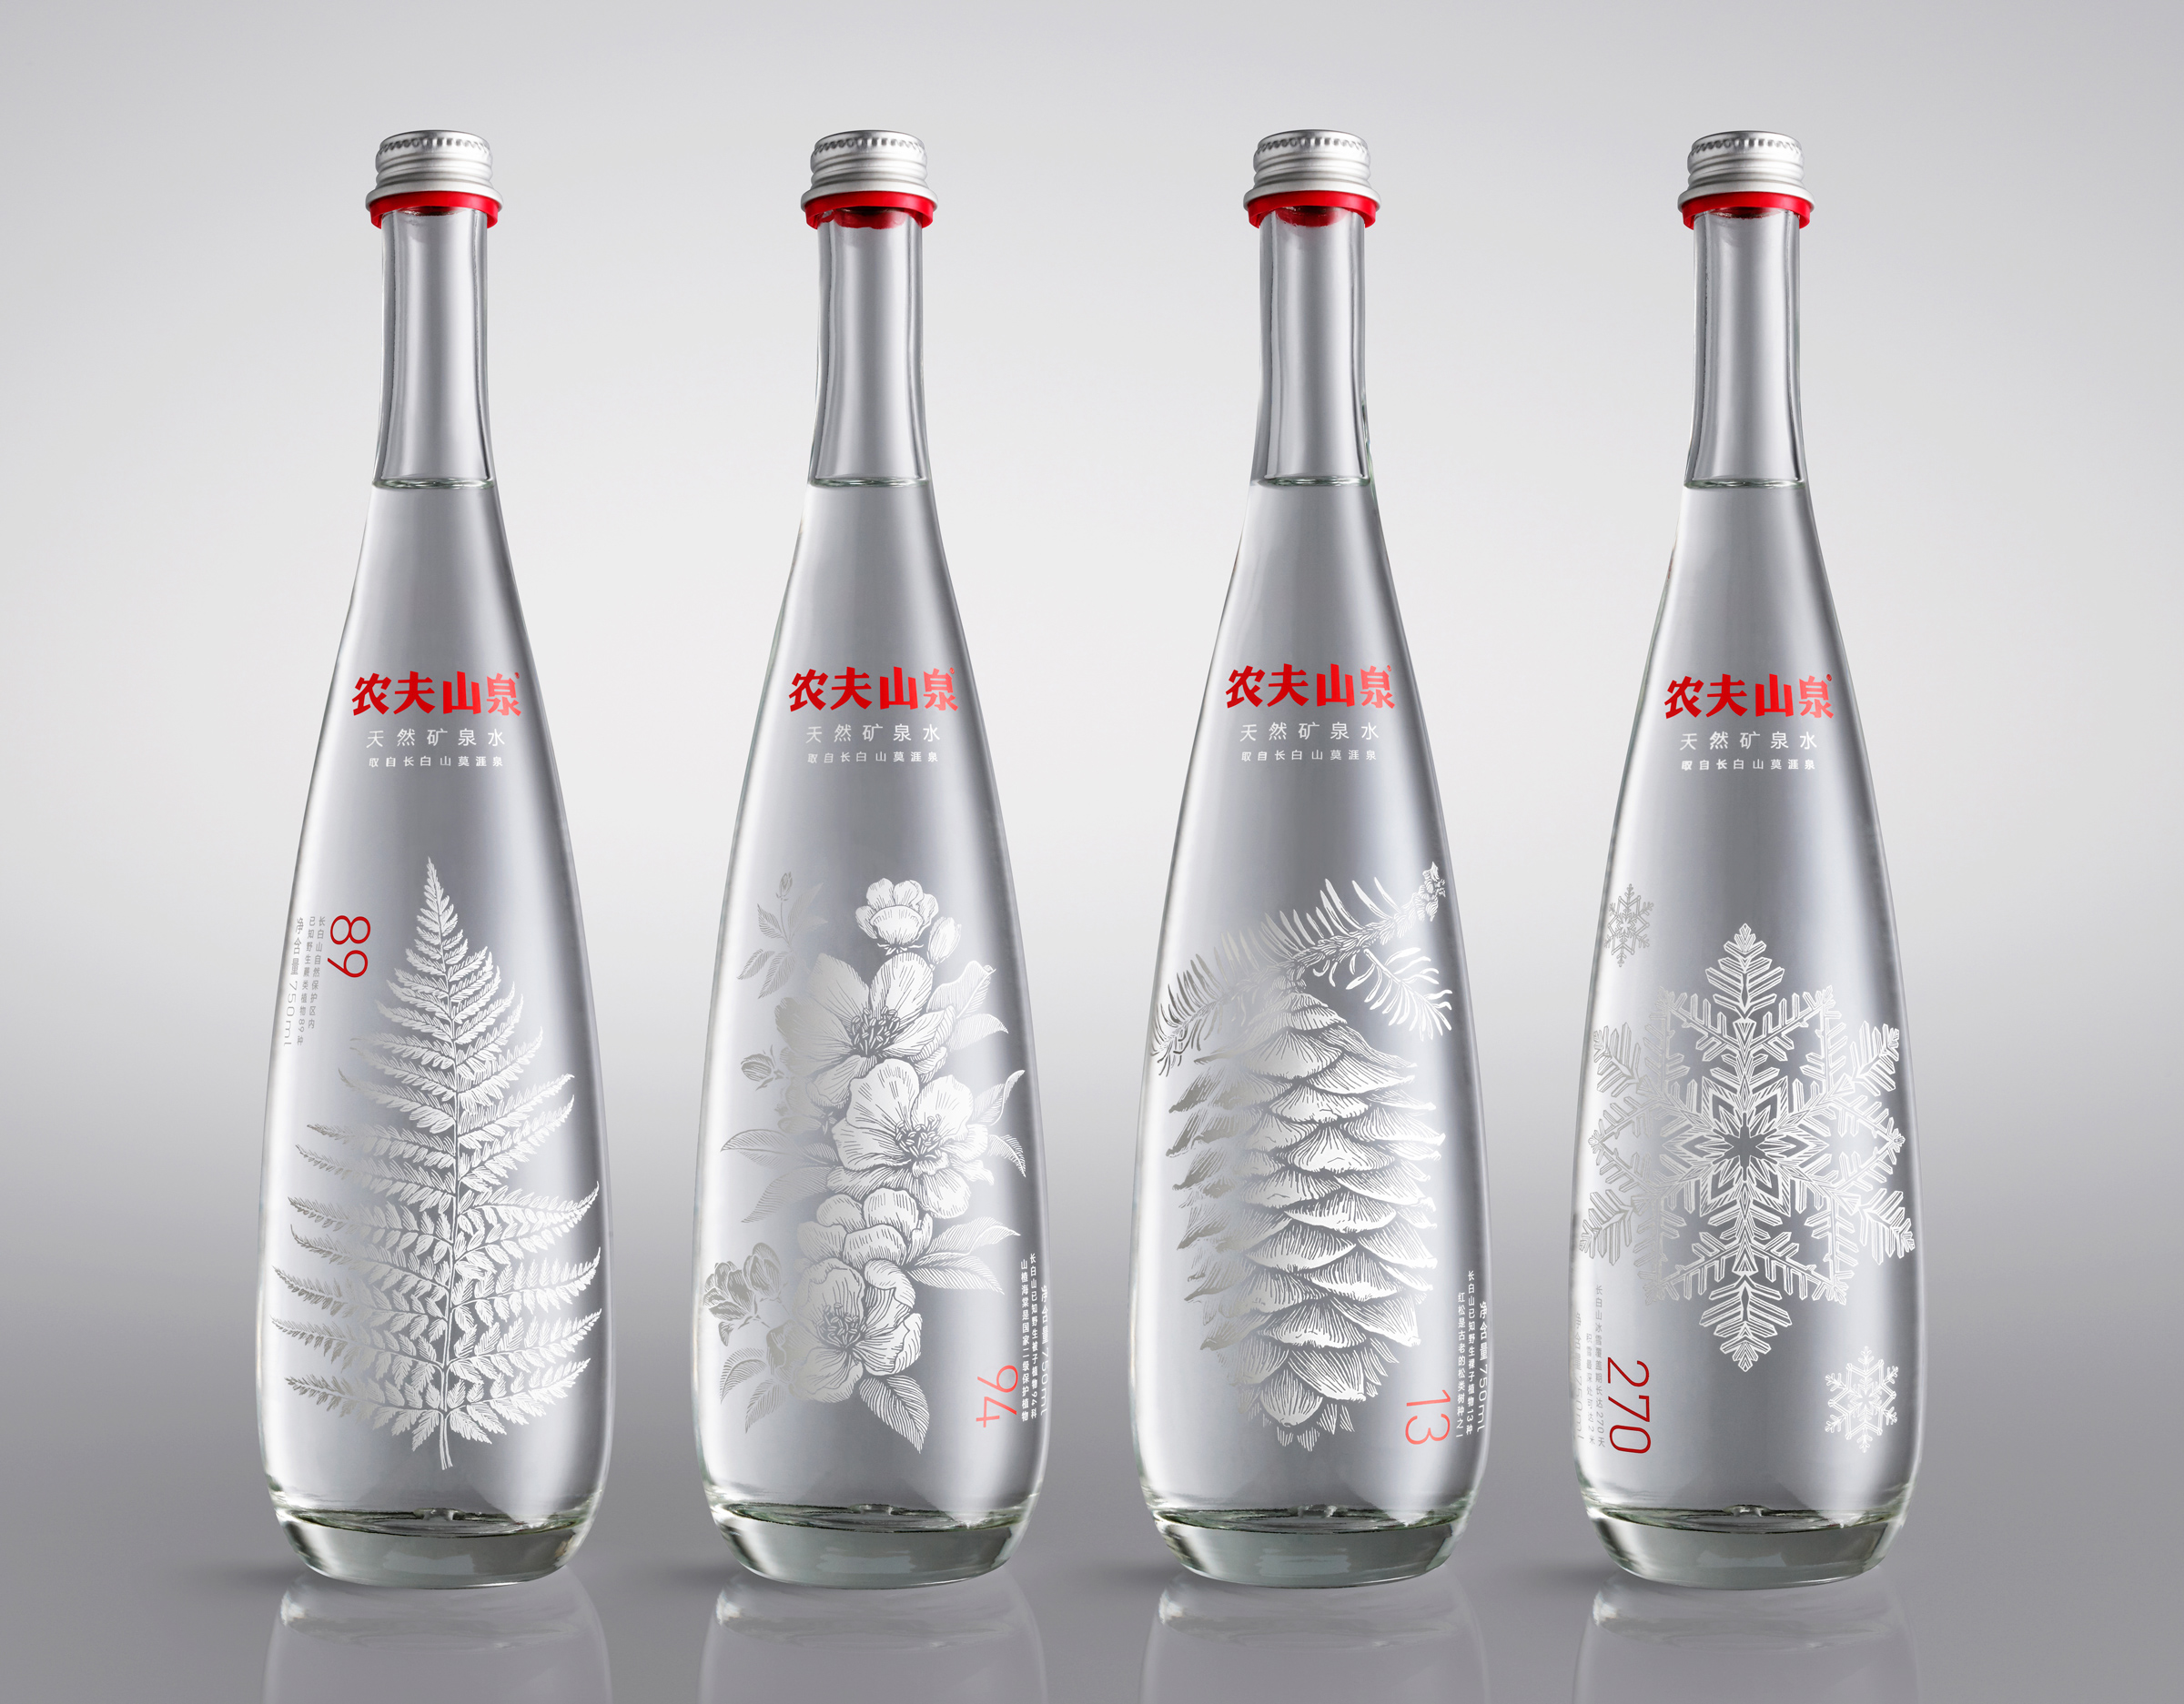 nongfu-premium-world-packaging-design-most-notable-agency-and-work-of-2015-horse.jpg